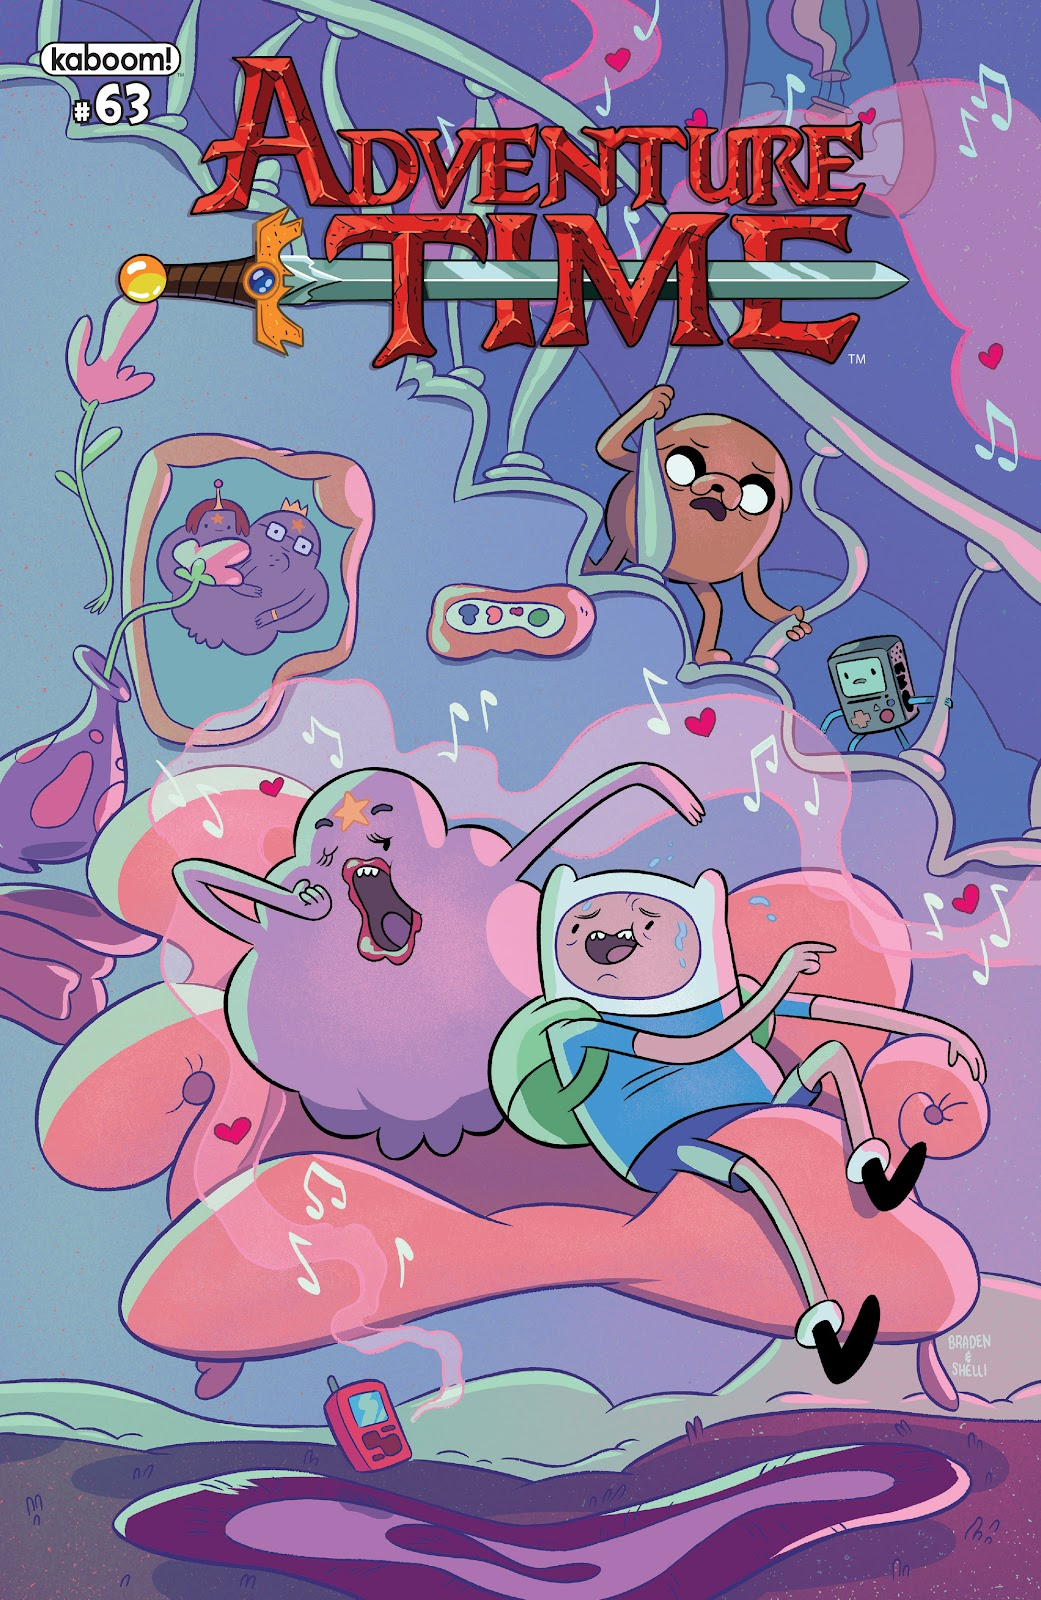 Read online Adventure Time comic -  Issue #63 - 1